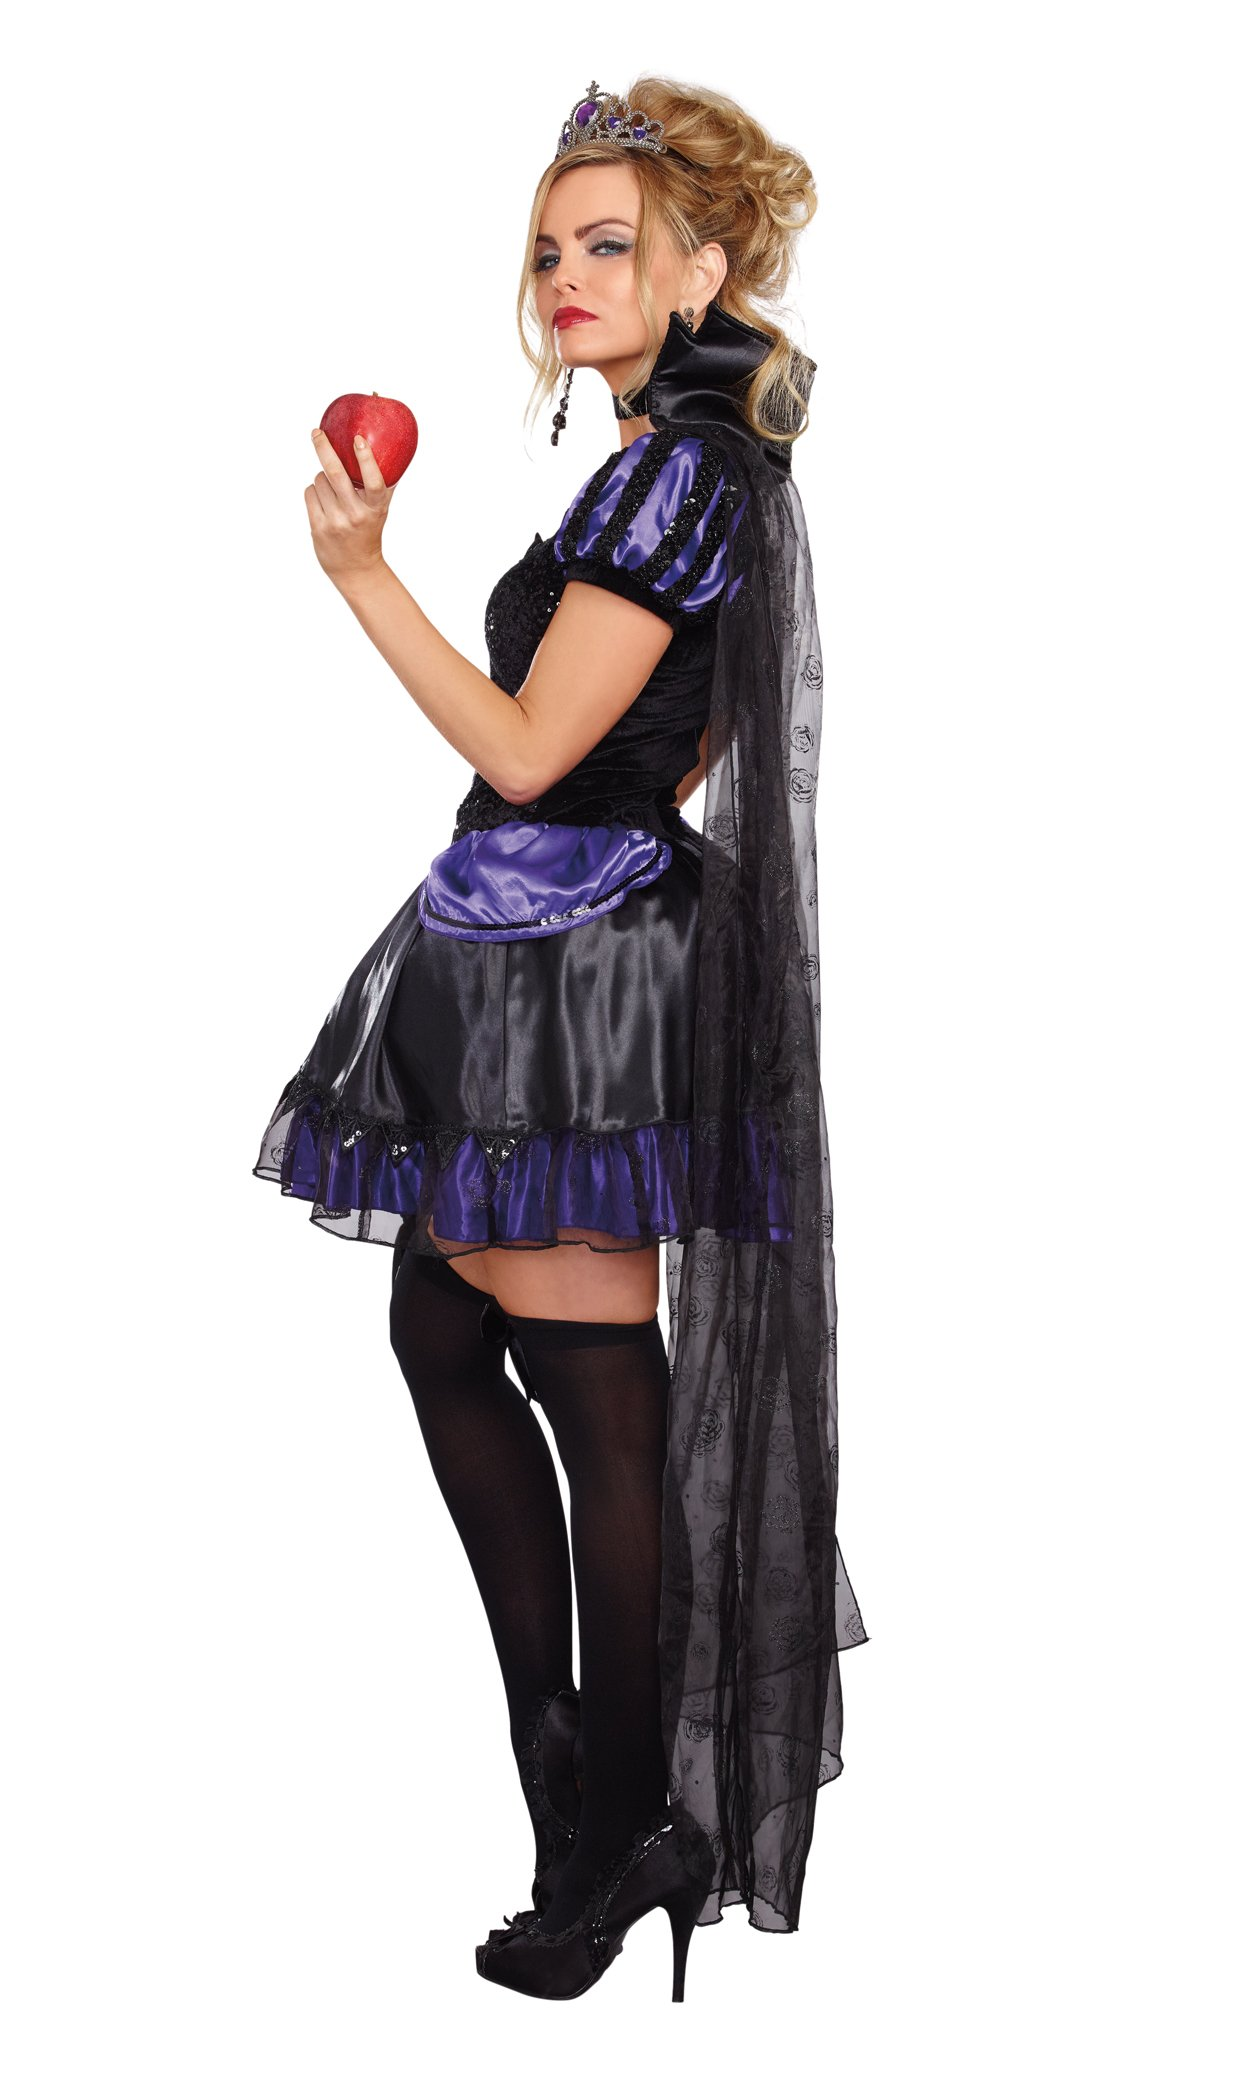 Dreamgirl Women's Evil Queen Costume, Black/Purple, Large by Dreamgirl (Image #2)